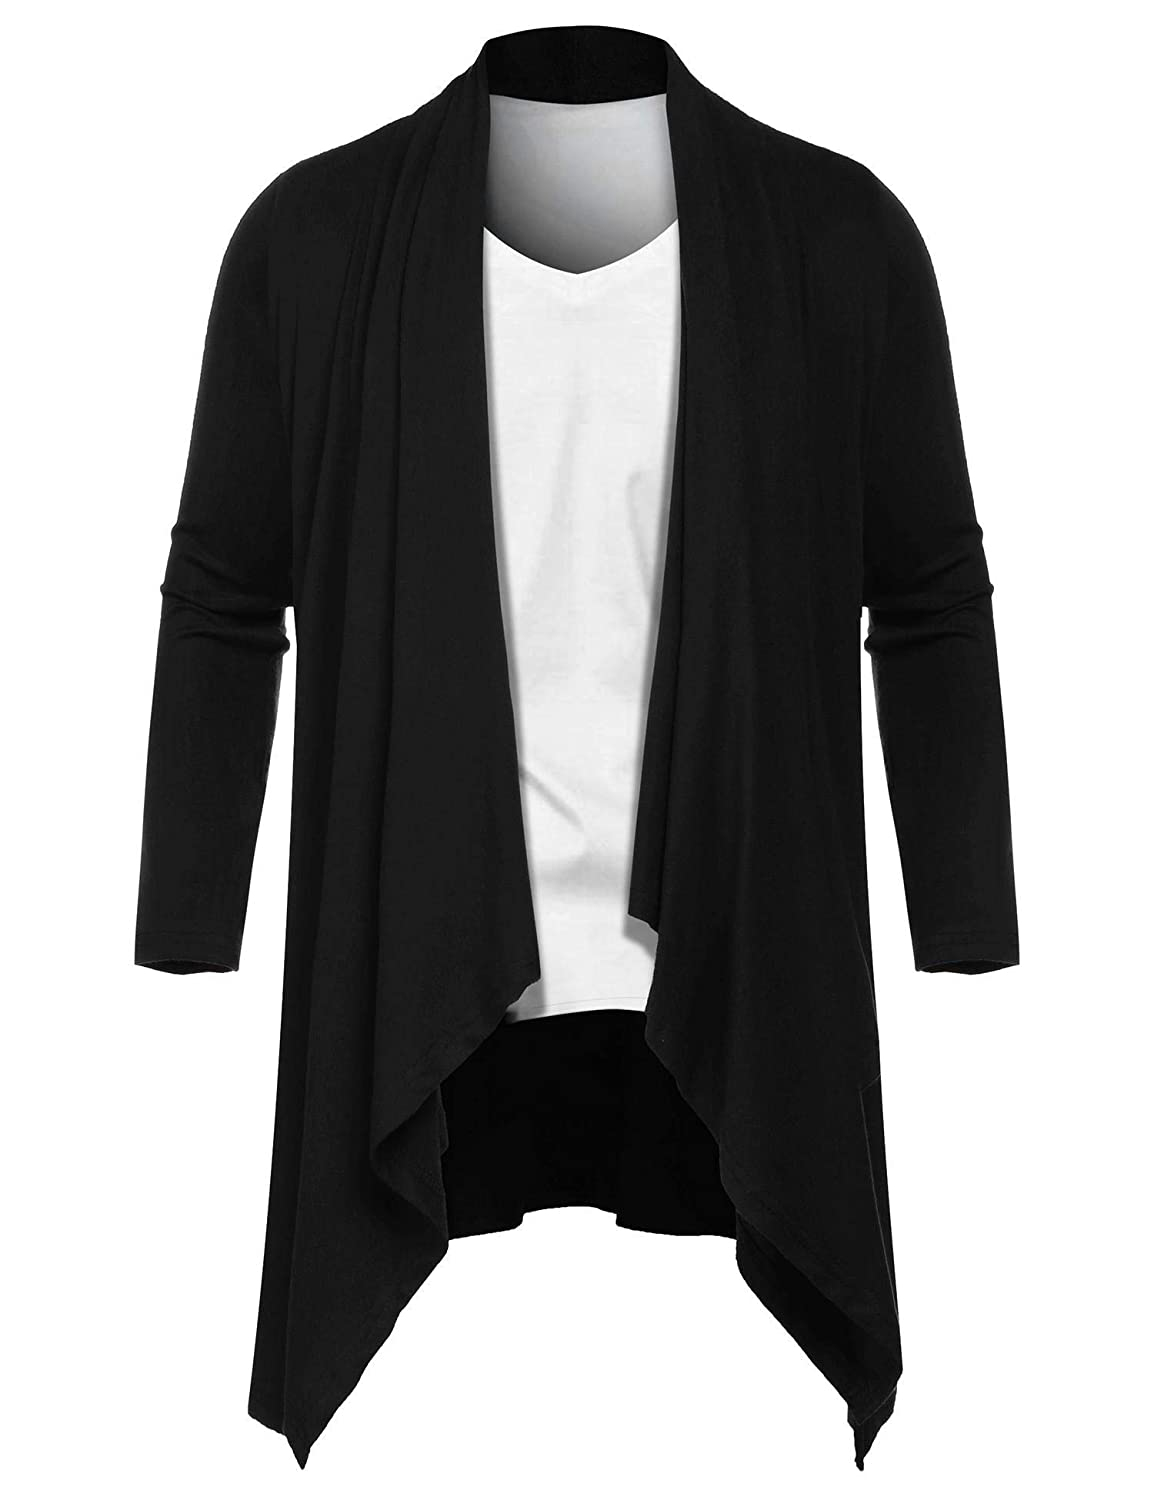 Modfine Mens Cardigan Open Front Ruffle Shawl Collar Fashion Loose Lightweight Drape Cape